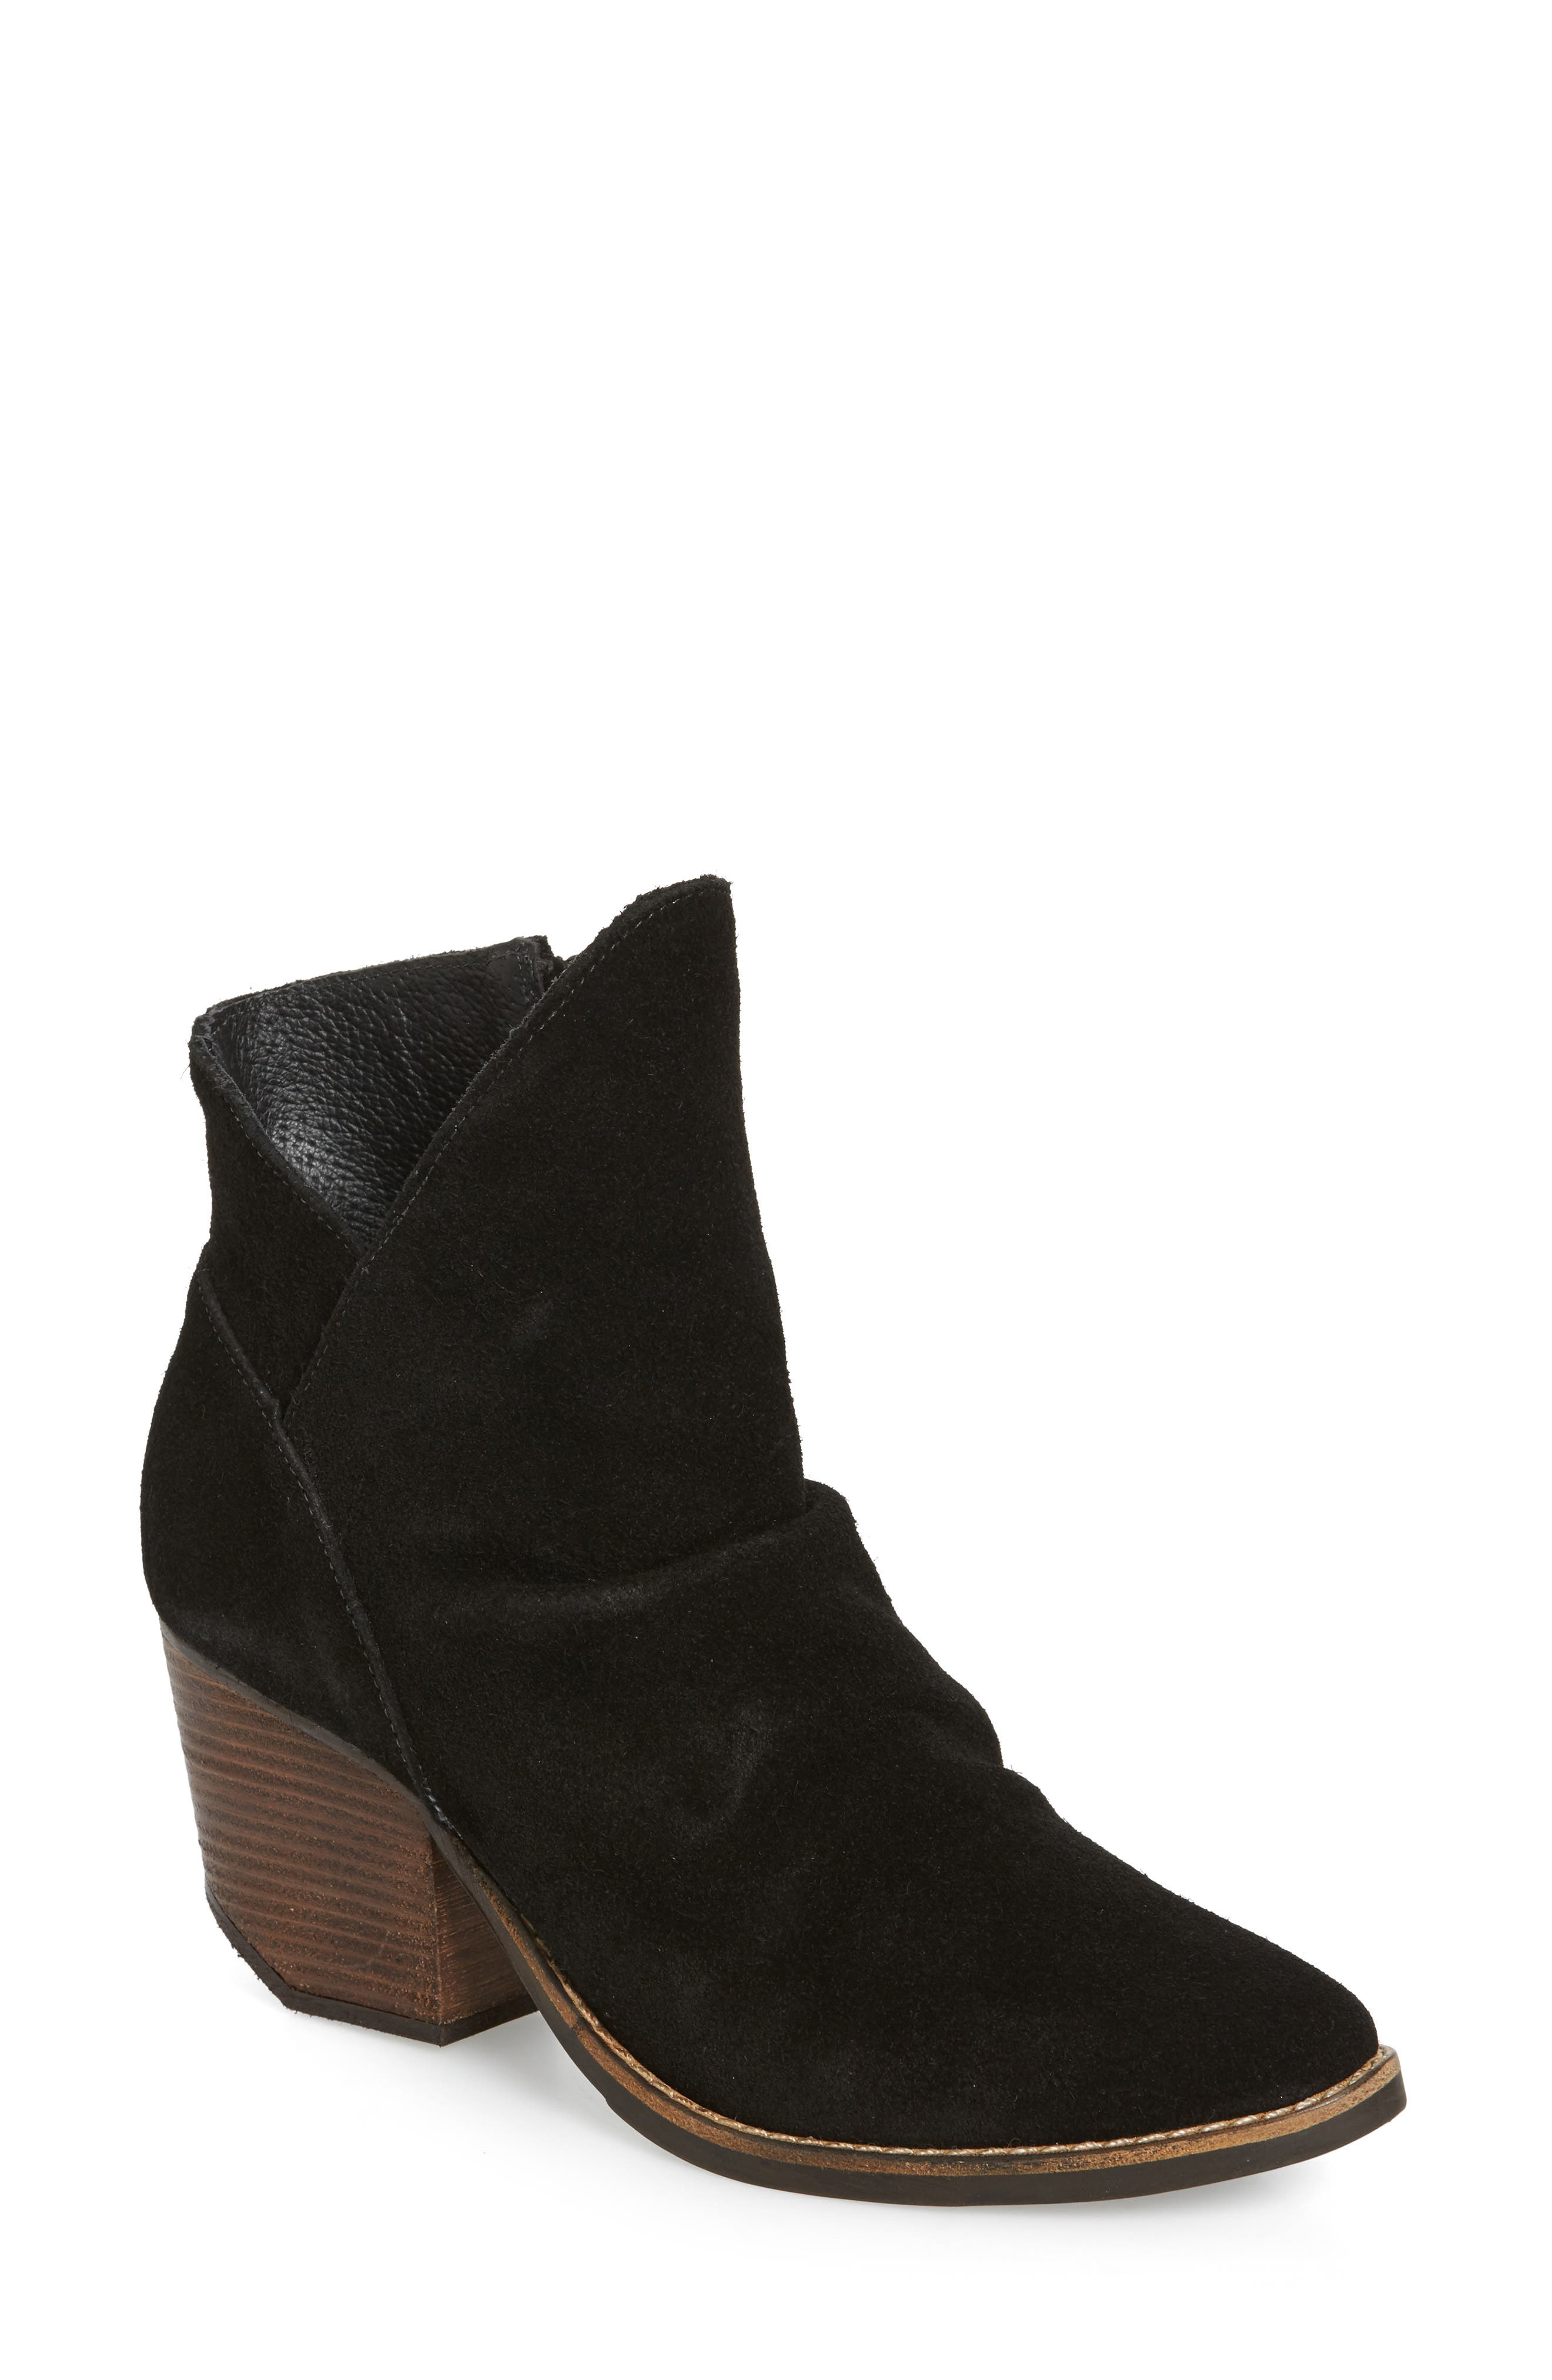 Society Bootie,                             Main thumbnail 1, color,                             017